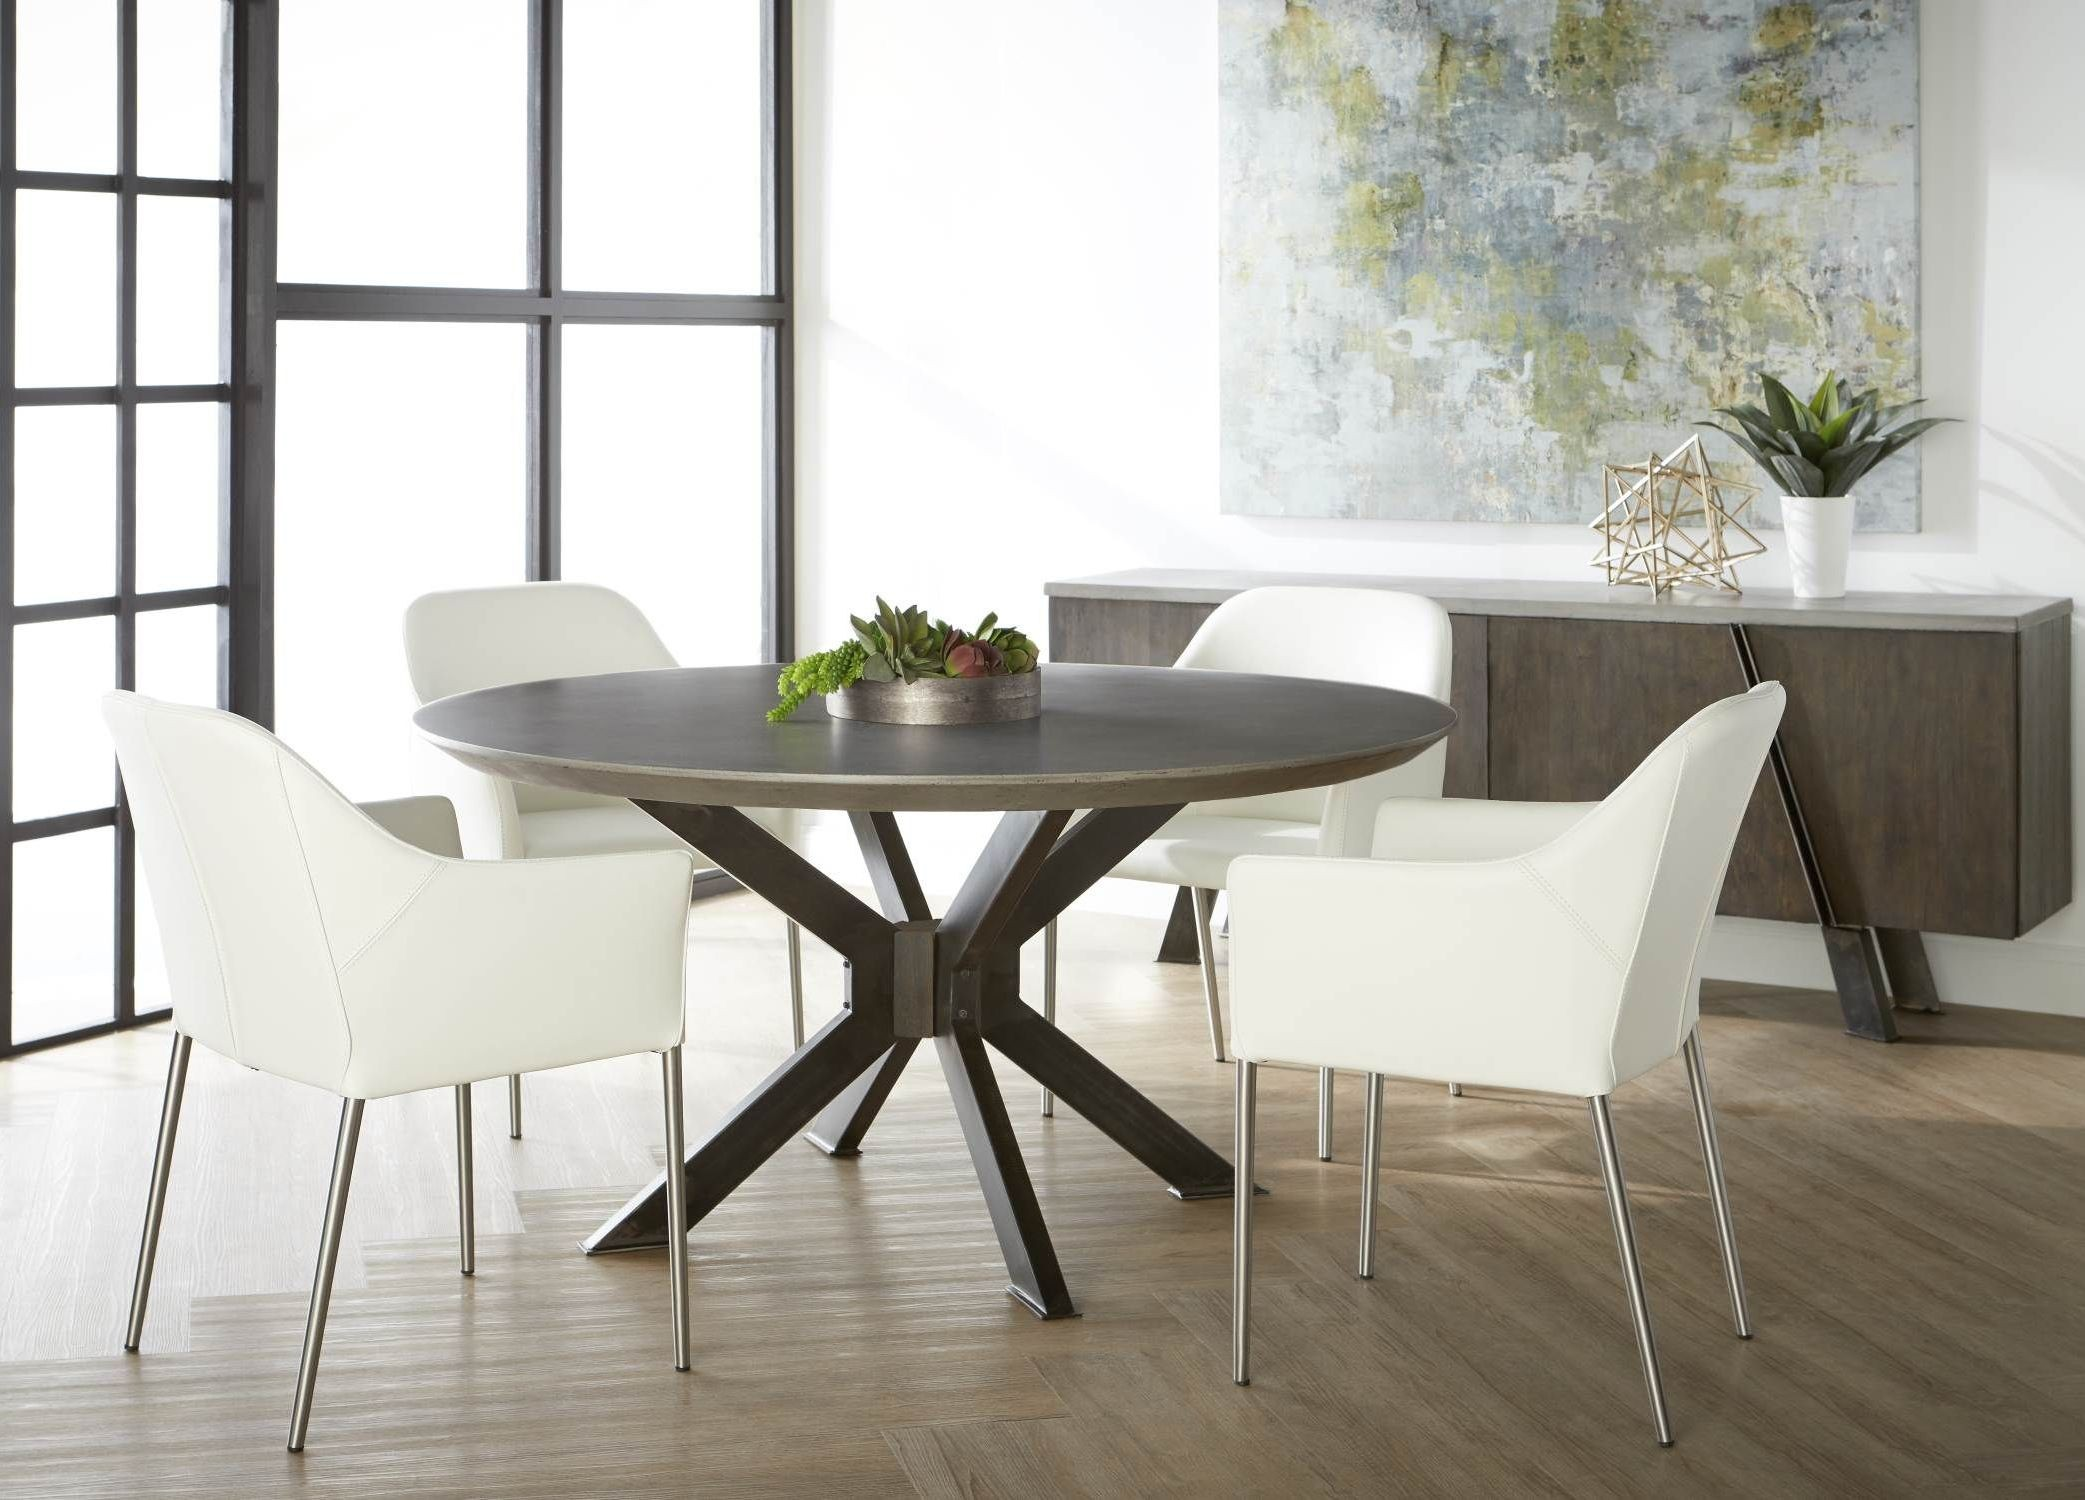 Industry Ash Grey Concrete Round Dining Room Set With